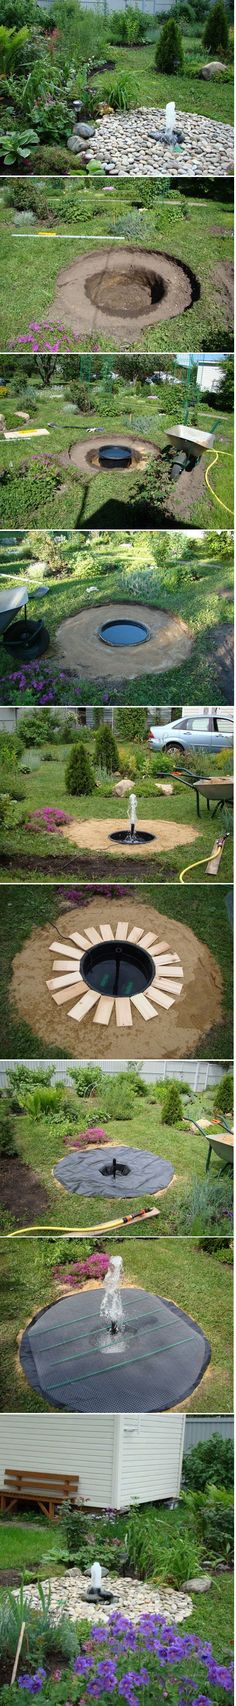 DIY Backyard Buried Fountain                                                                                                                                                                                 Mehr